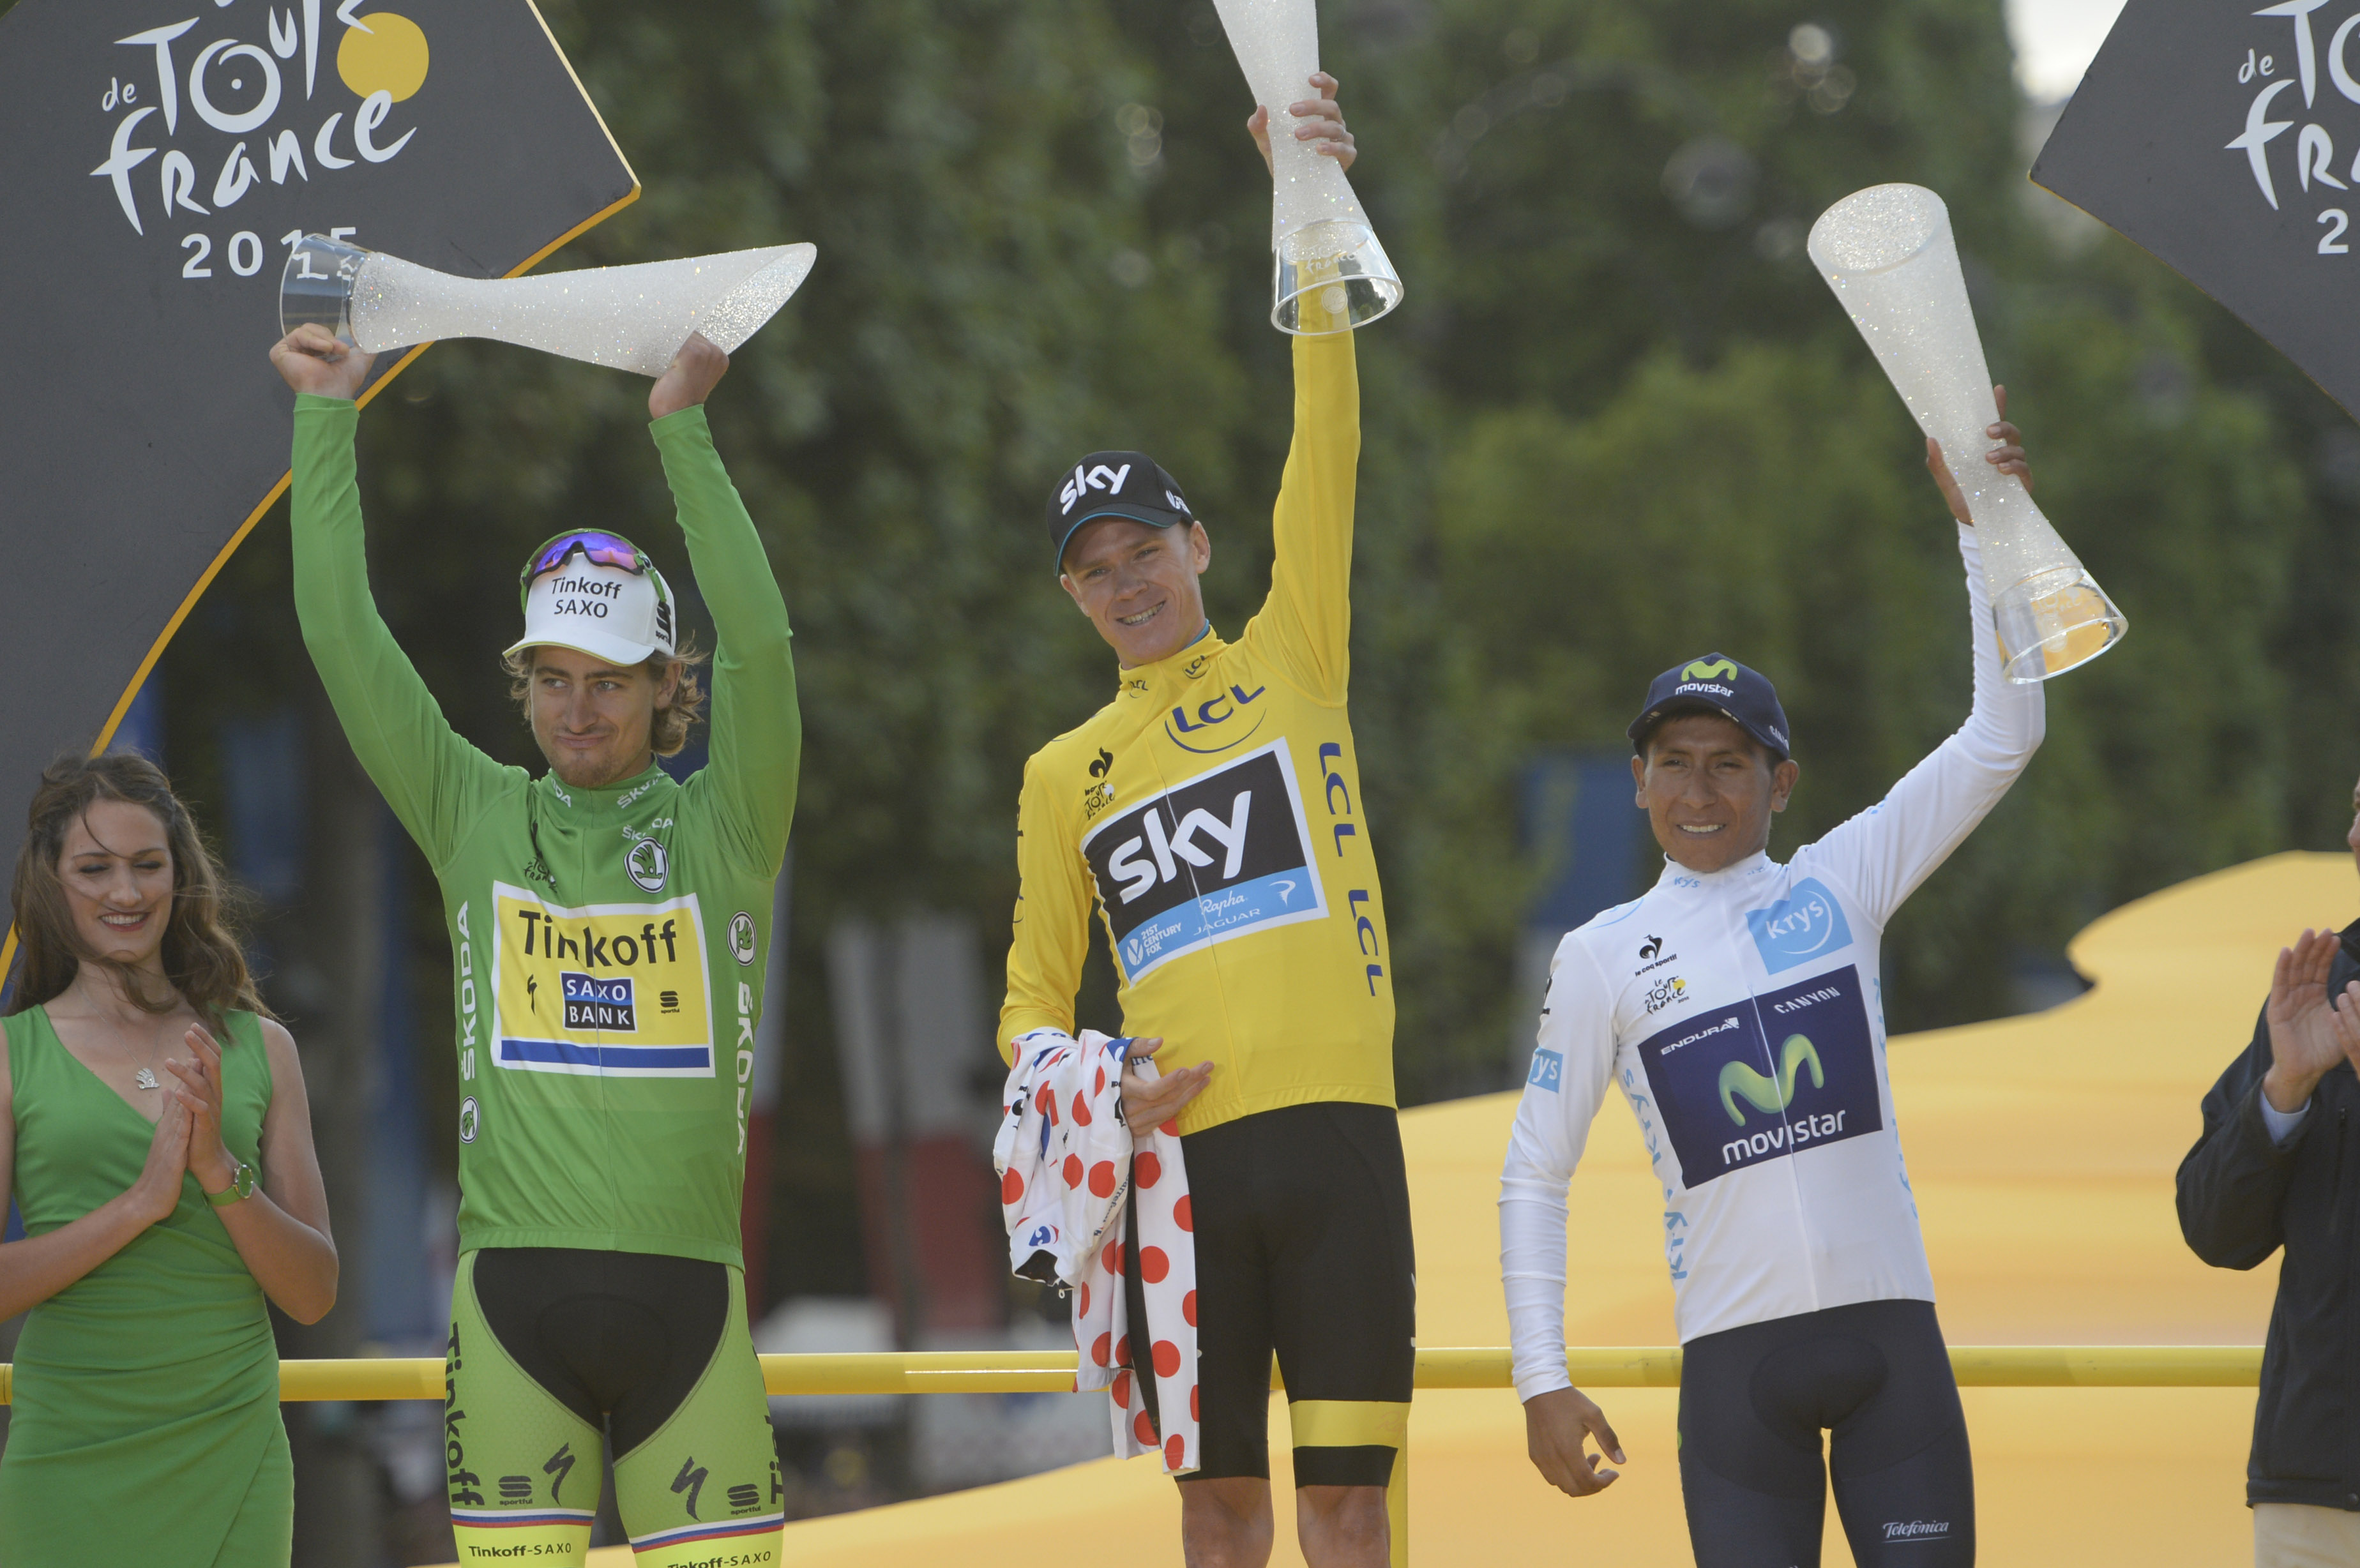 Chris Froome hat die Tour de France 2015 gewonnen. (pic: Sirotti)